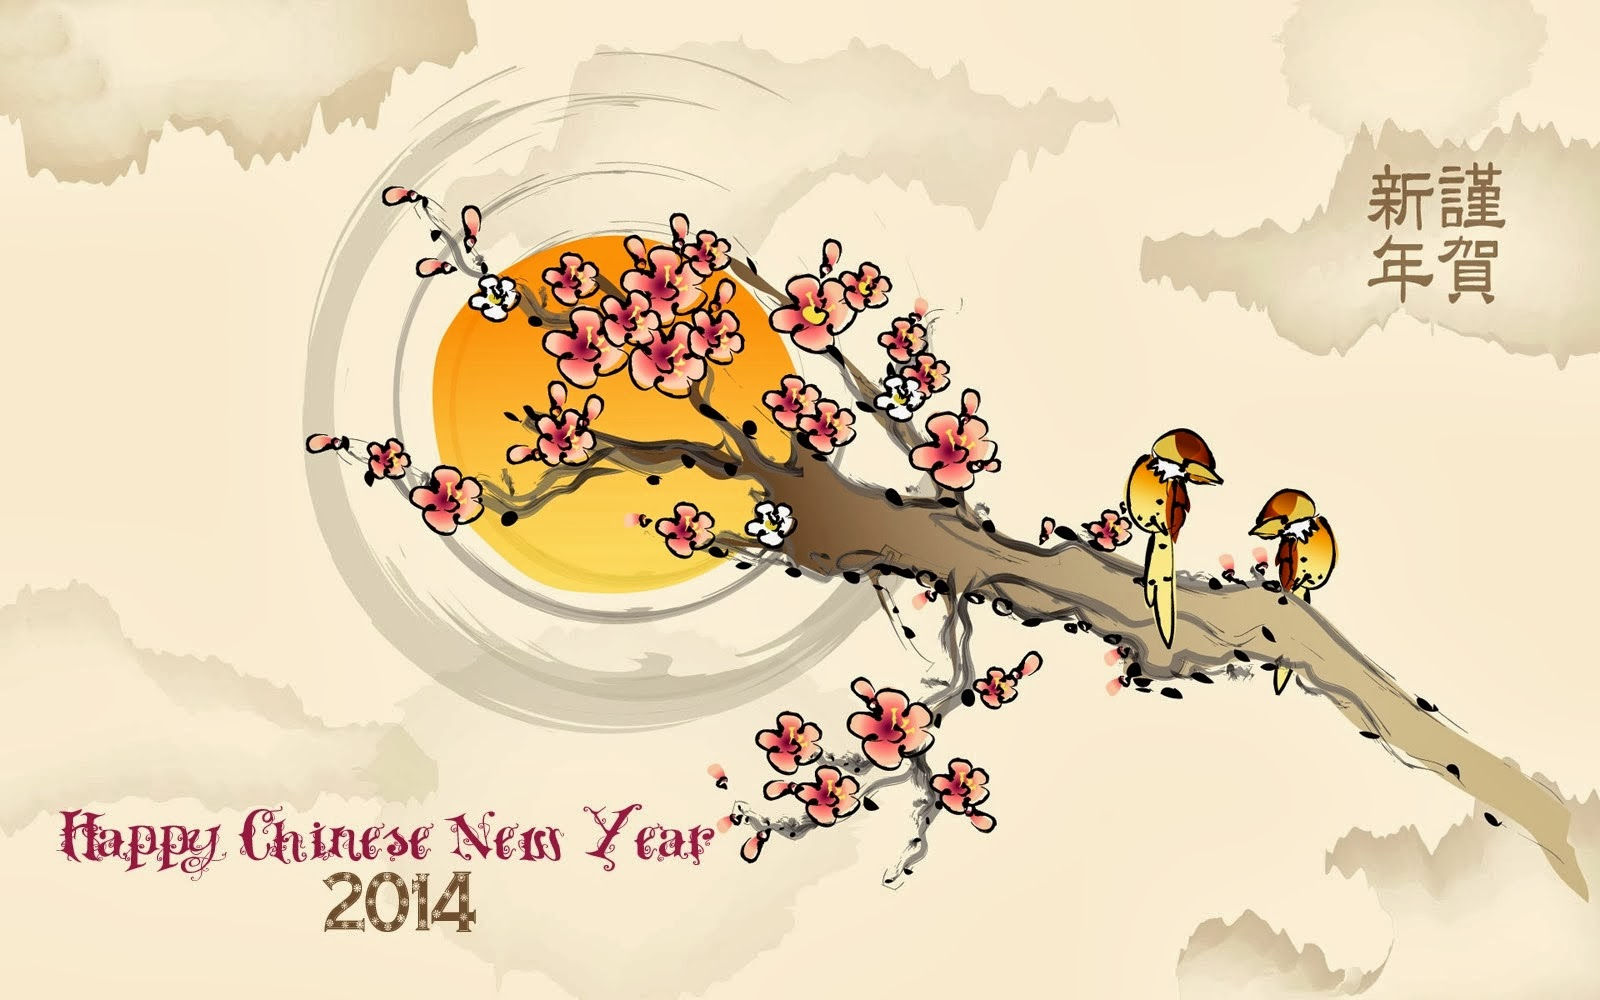 LunarNewYear2014HappyChineseNewYearTetNewYear2014Wishes . 1600 x 1000.Happy Chinese New Year Greetings In Cantonese